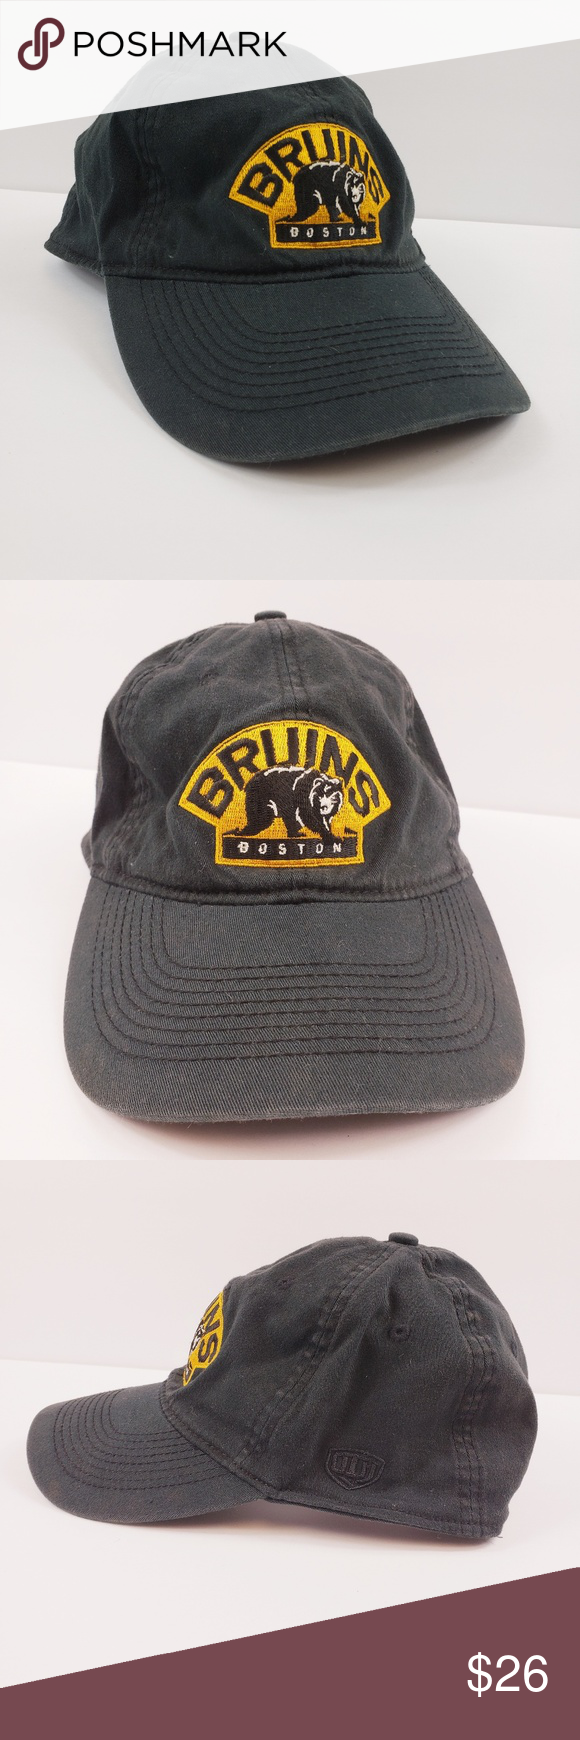 c704ff07416 NHL Boston Bruins Hockey Stanley Cup Fitted Hat Black fitted Boston Bruins  hat. Stanley cup patch on back. First photo shows colors correctly.